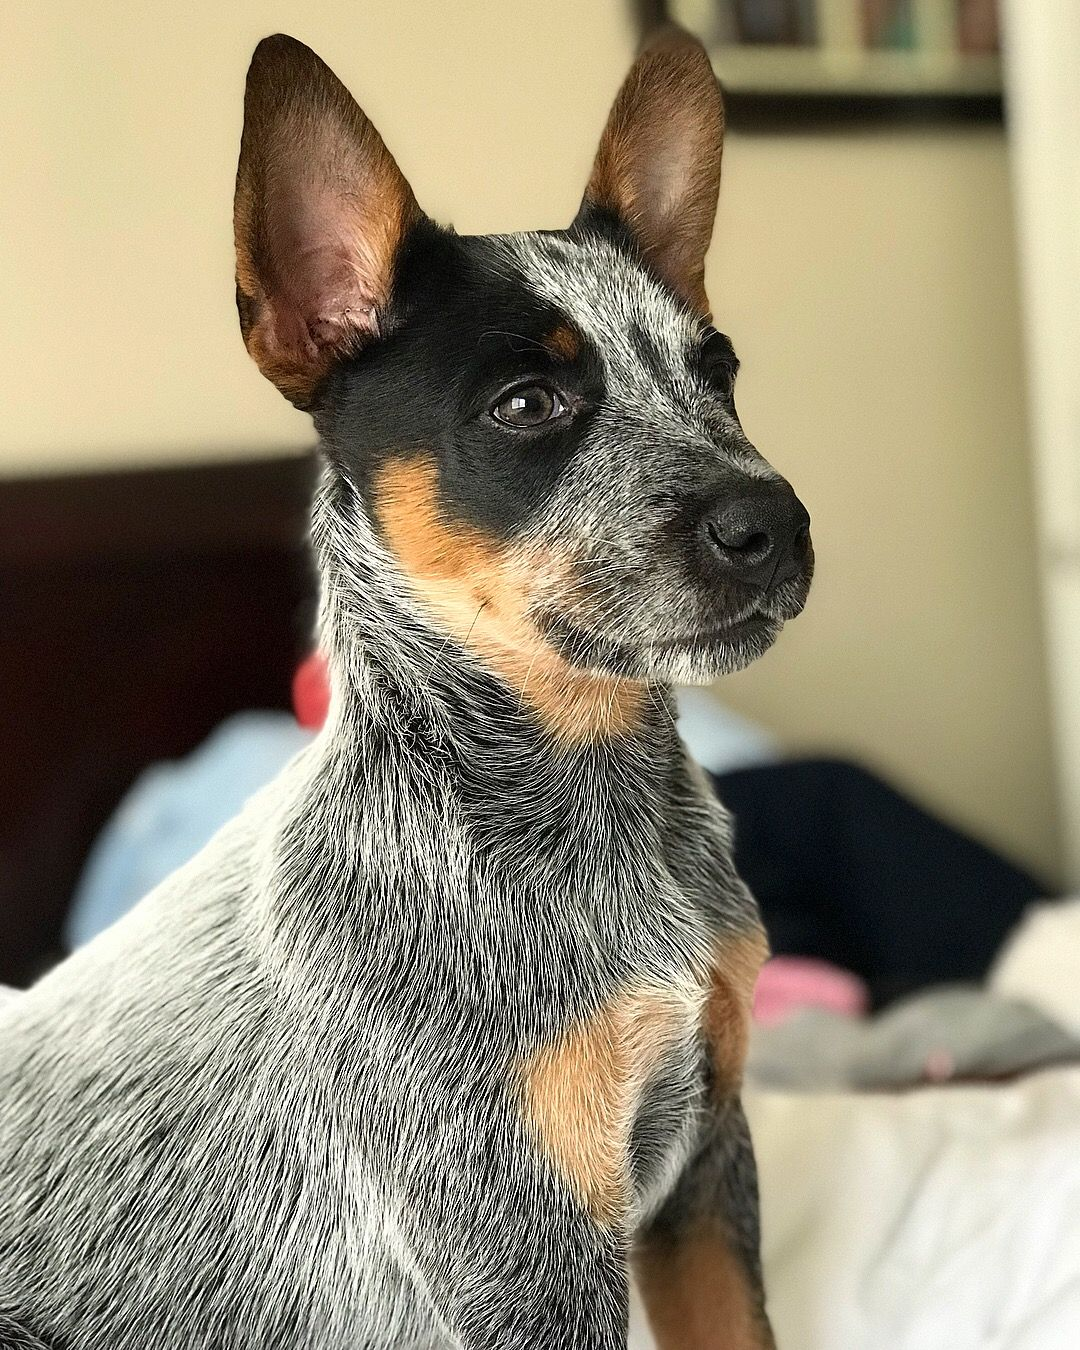 Doc At 9 Weeks Blue Heeler Australiancattledog Blueheeler Austrailian Cattle Dog Rat Terrier Dogs Blue Heeler Puppies